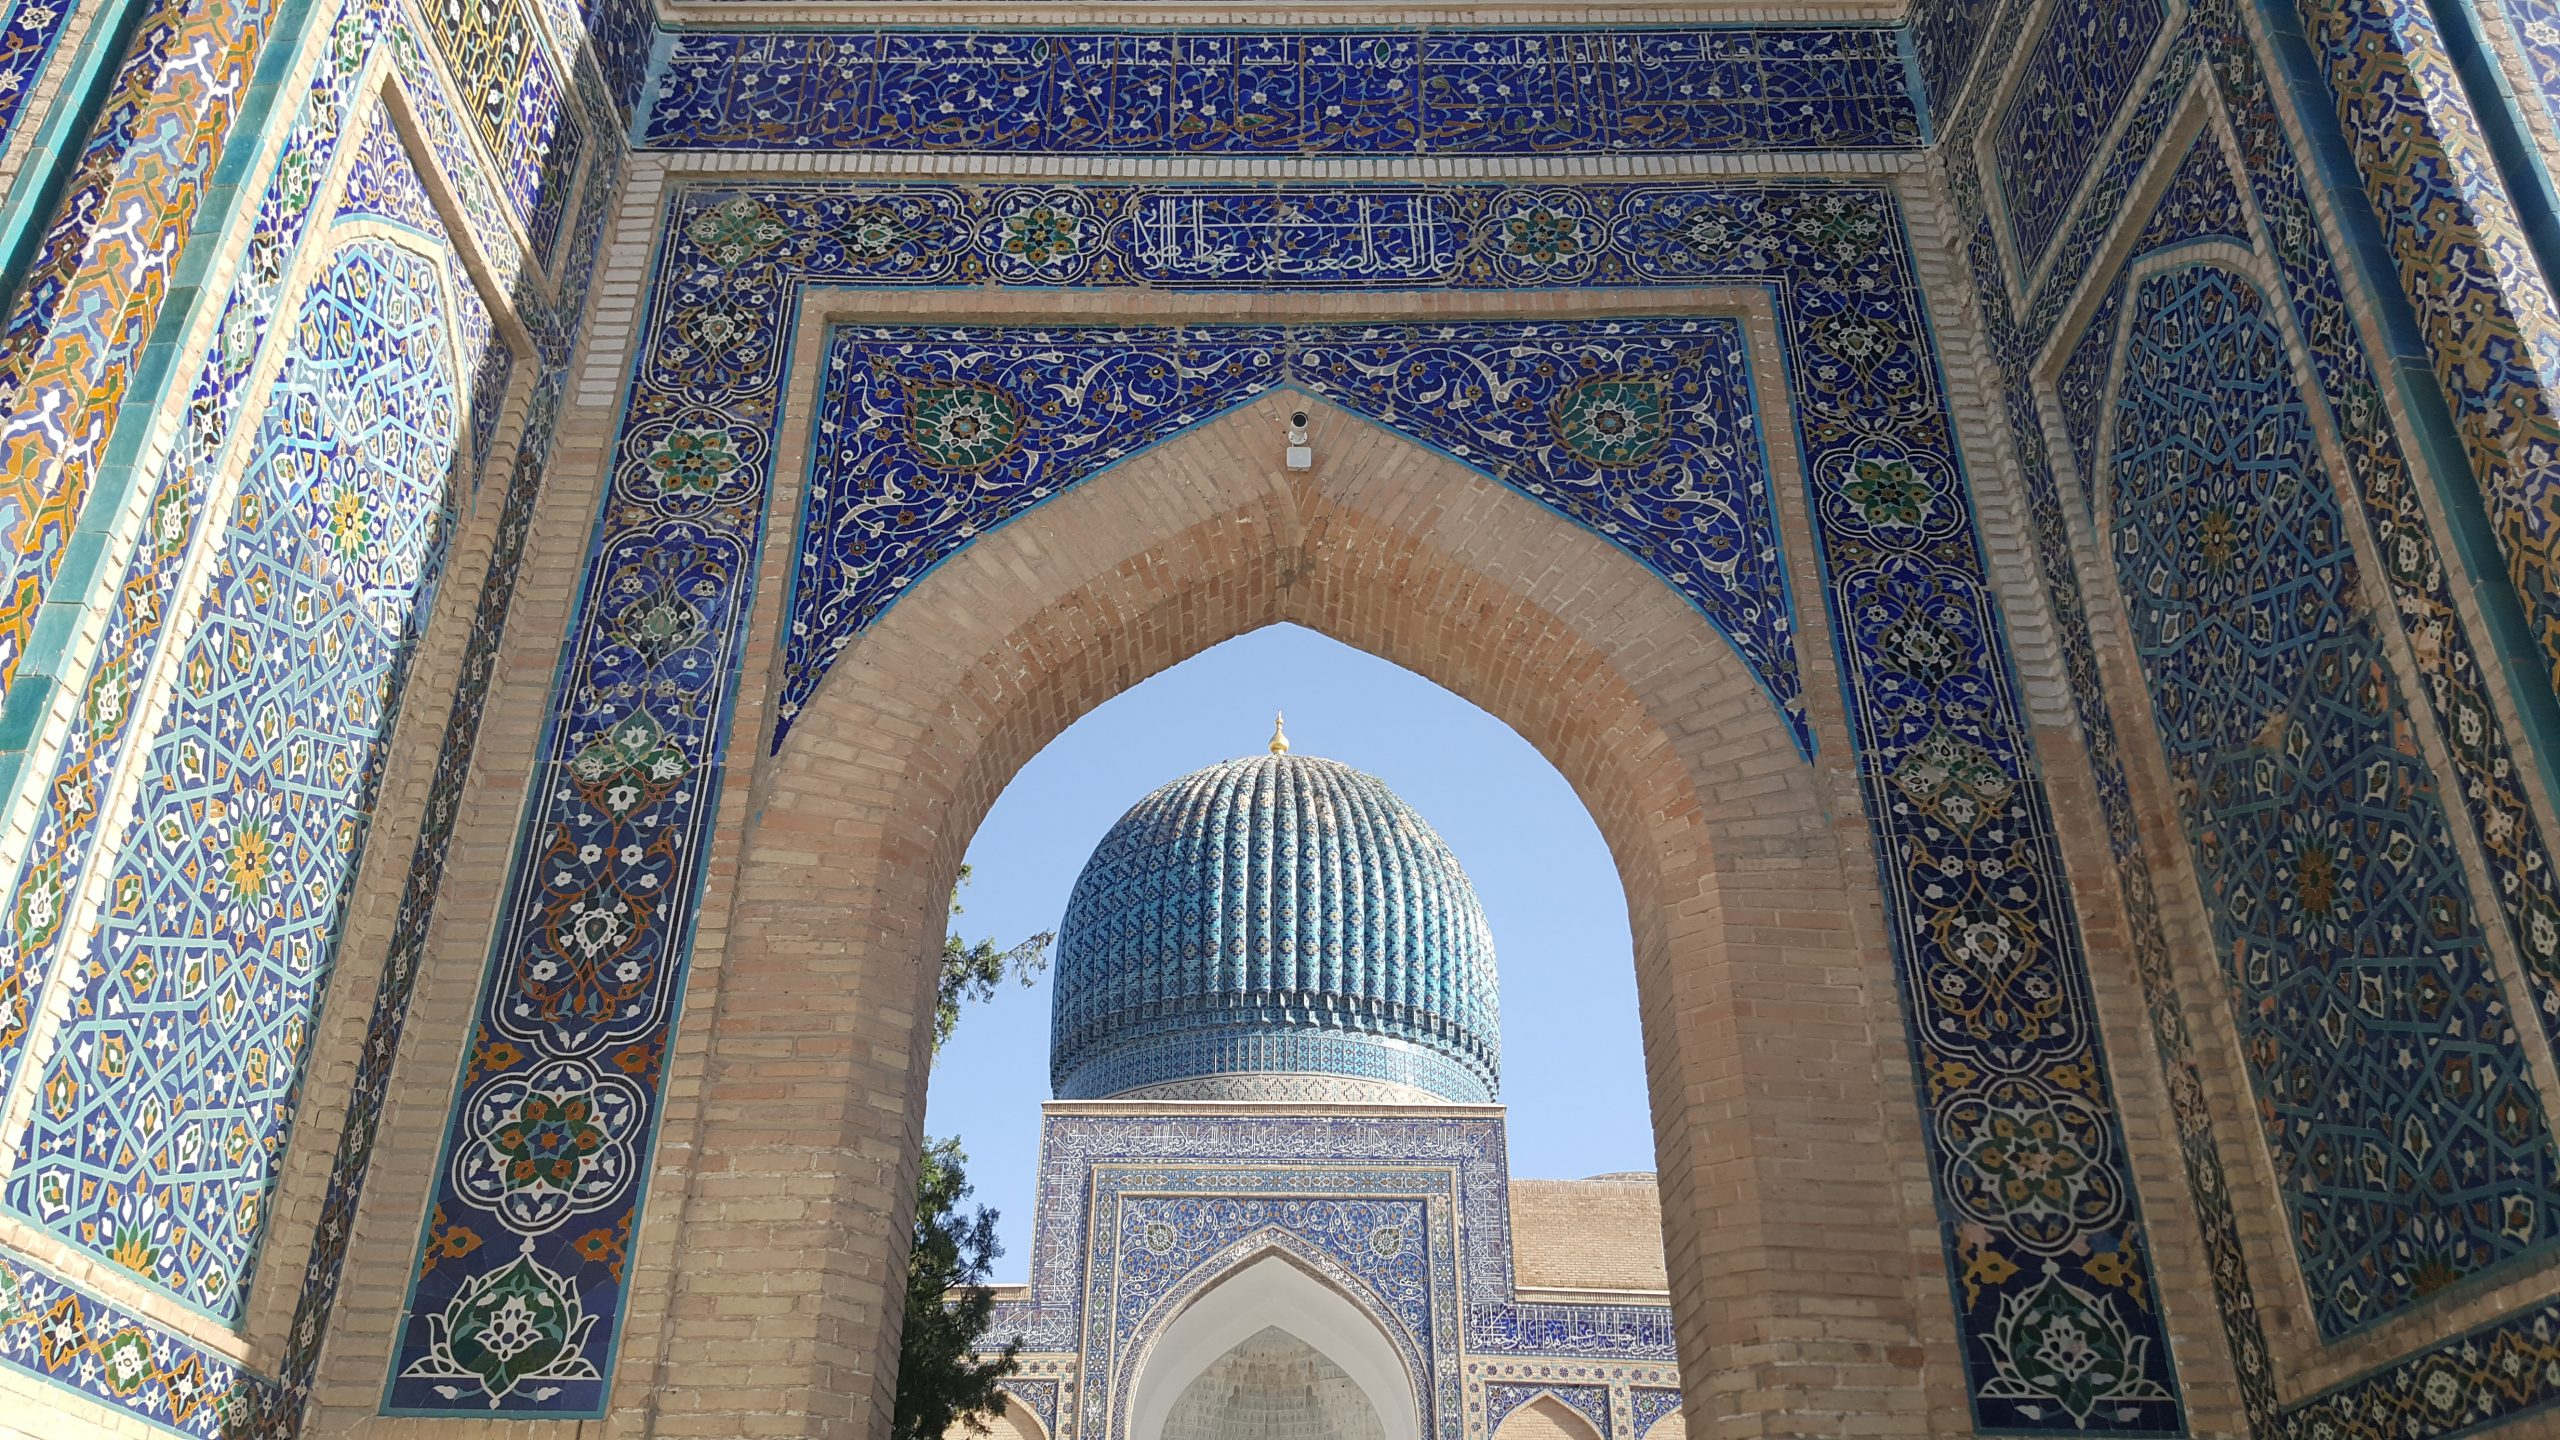 You are currently viewing 15 Photos & Videos Of The Historic Silk Road City Of Samarkand In Uzbekistan